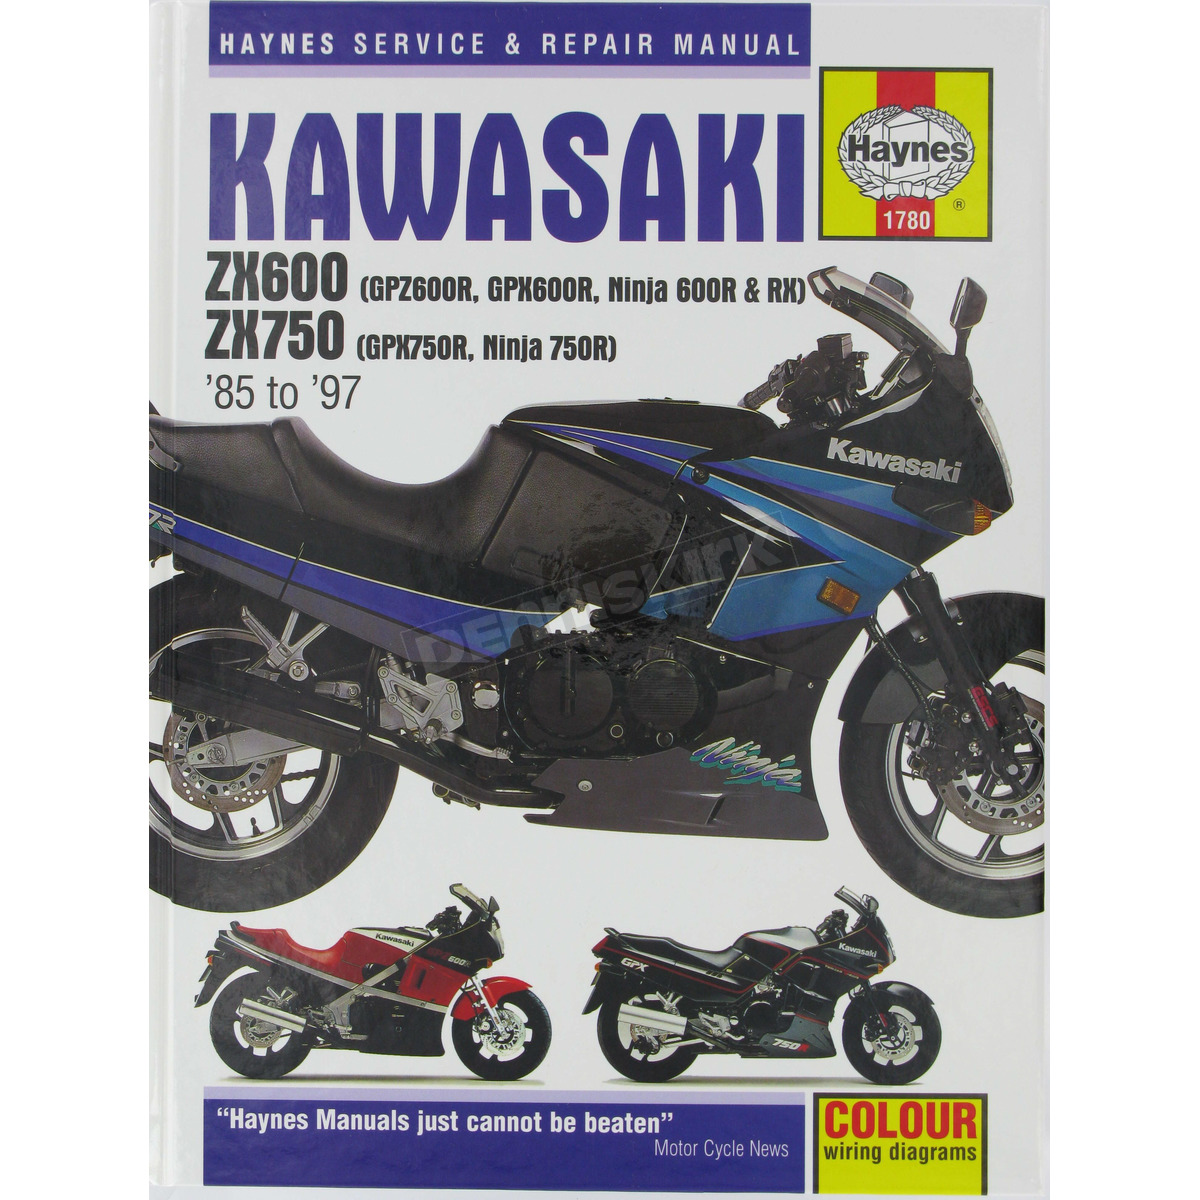 Haynes Kawasaki ZX600/ZX750 Repair Manual - 1780